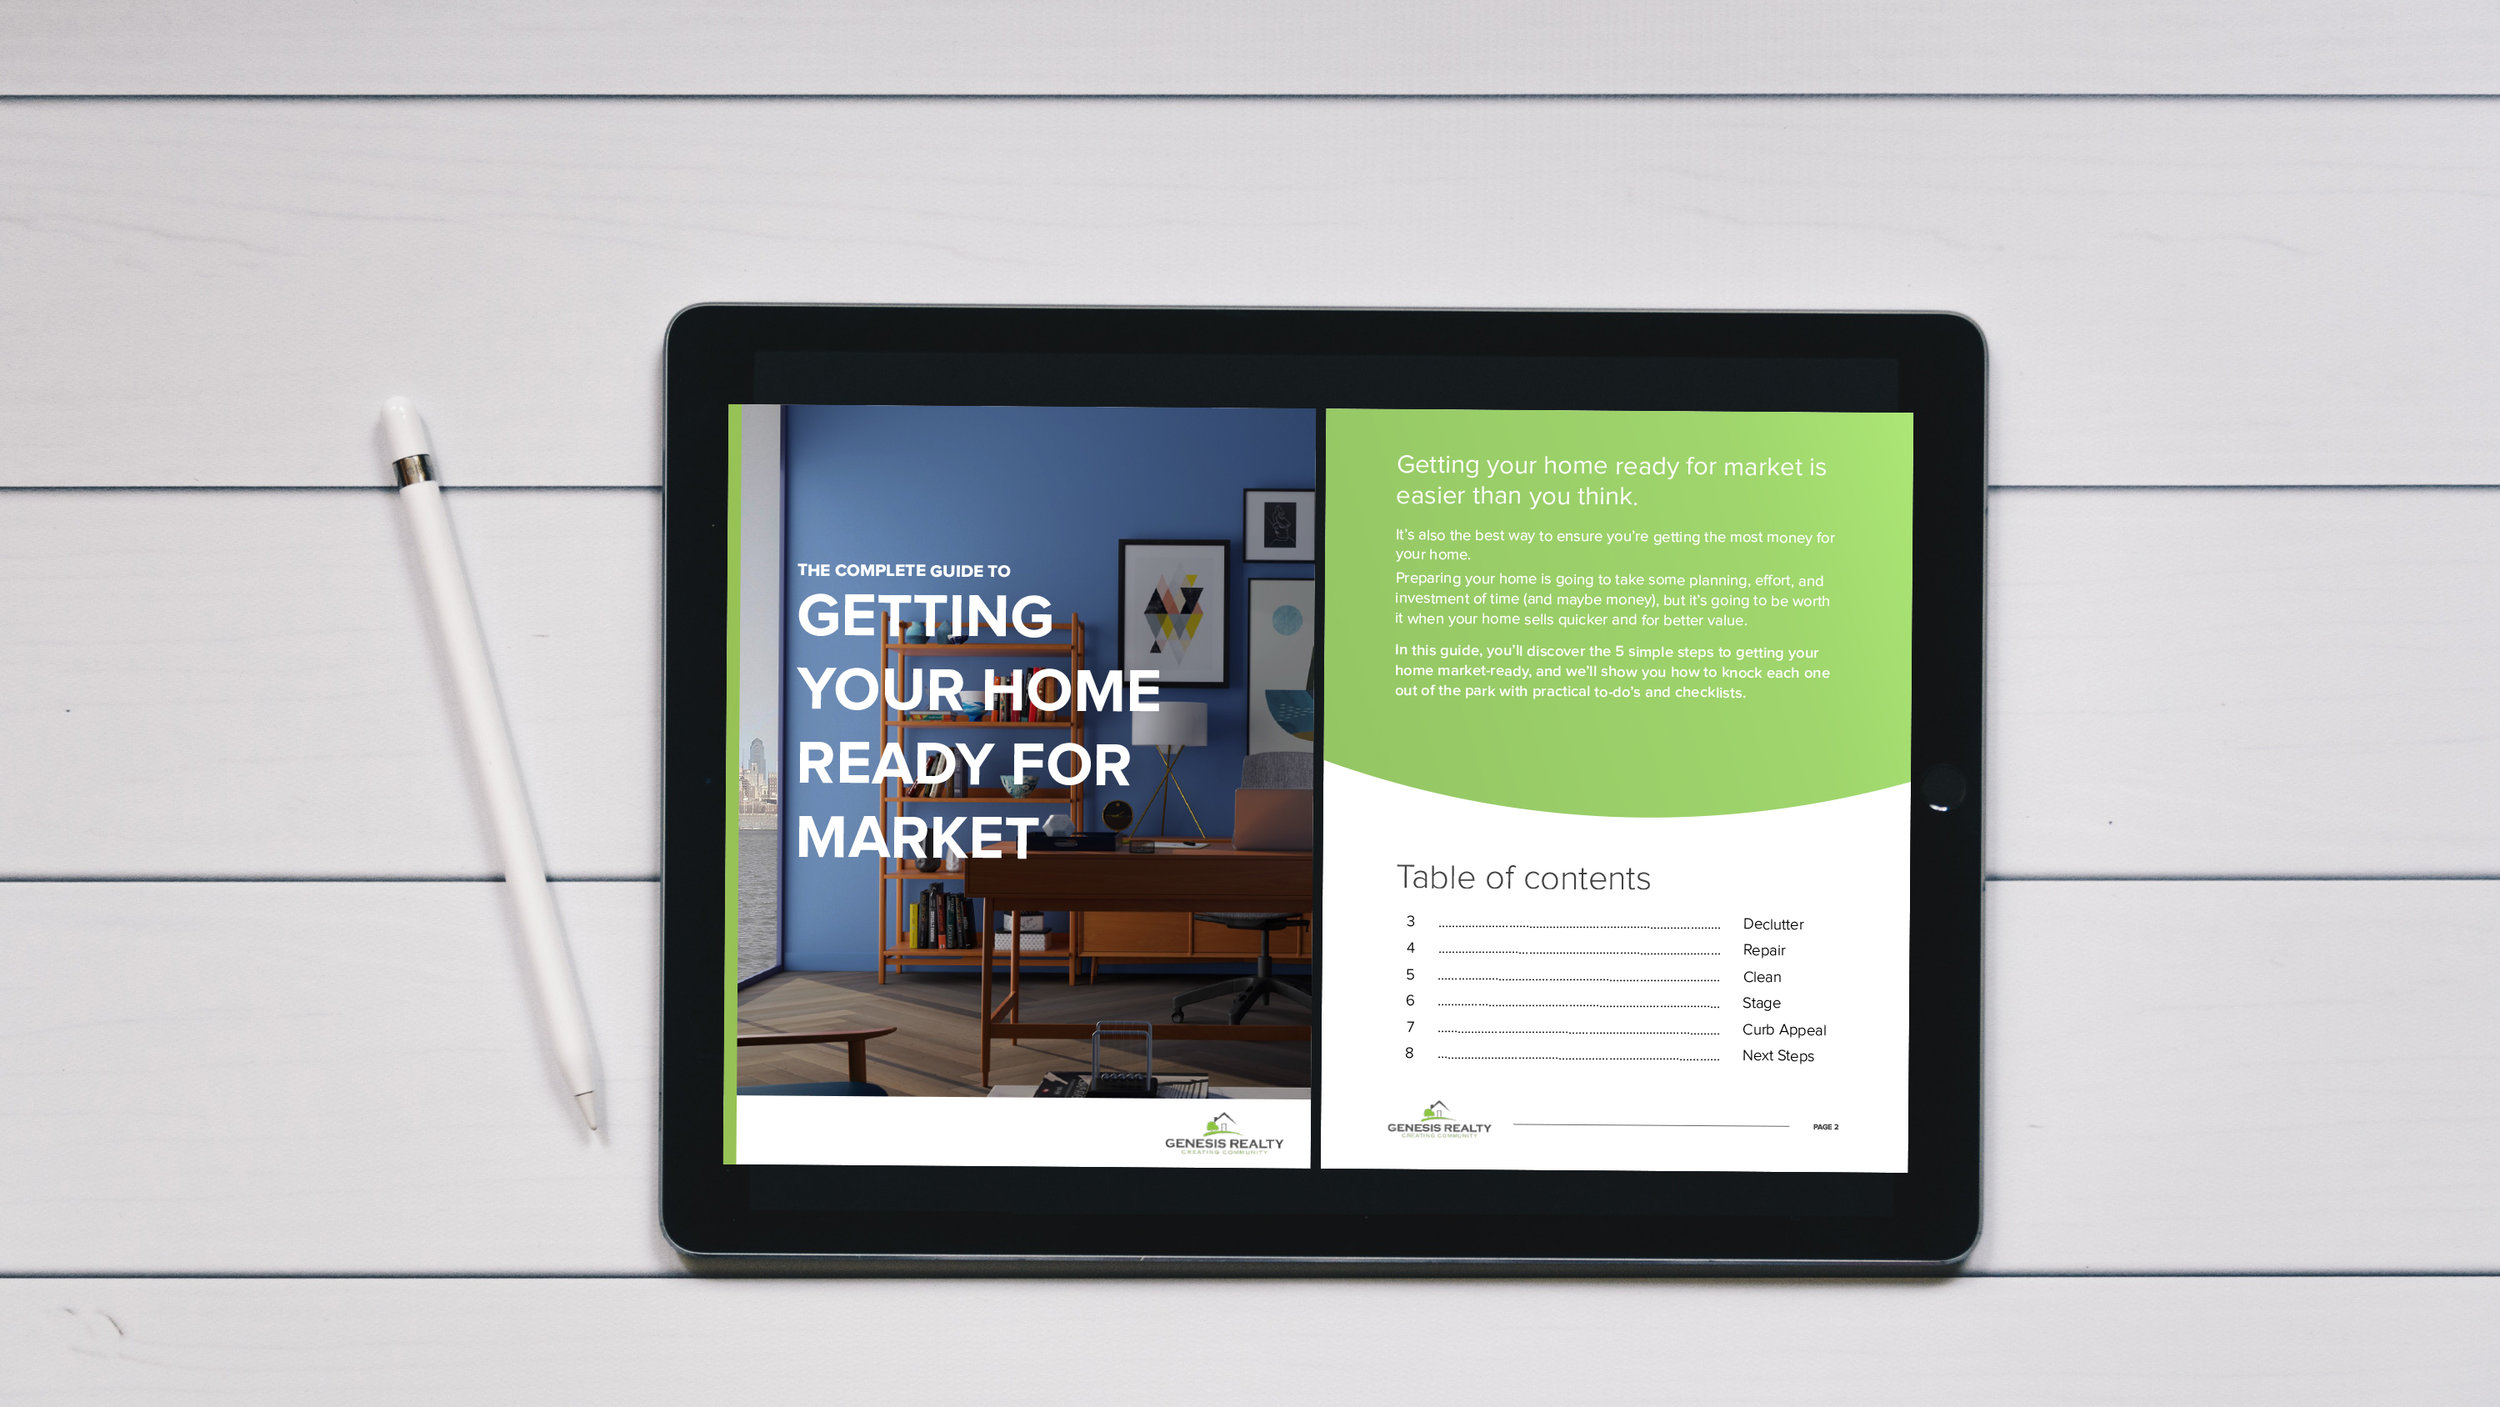 Selling your home, and need some more guidance? - Click here to download the guide 5 Steps to Getting Your Home Market Ready and learn more insights from agents who have sold hundreds of homes.